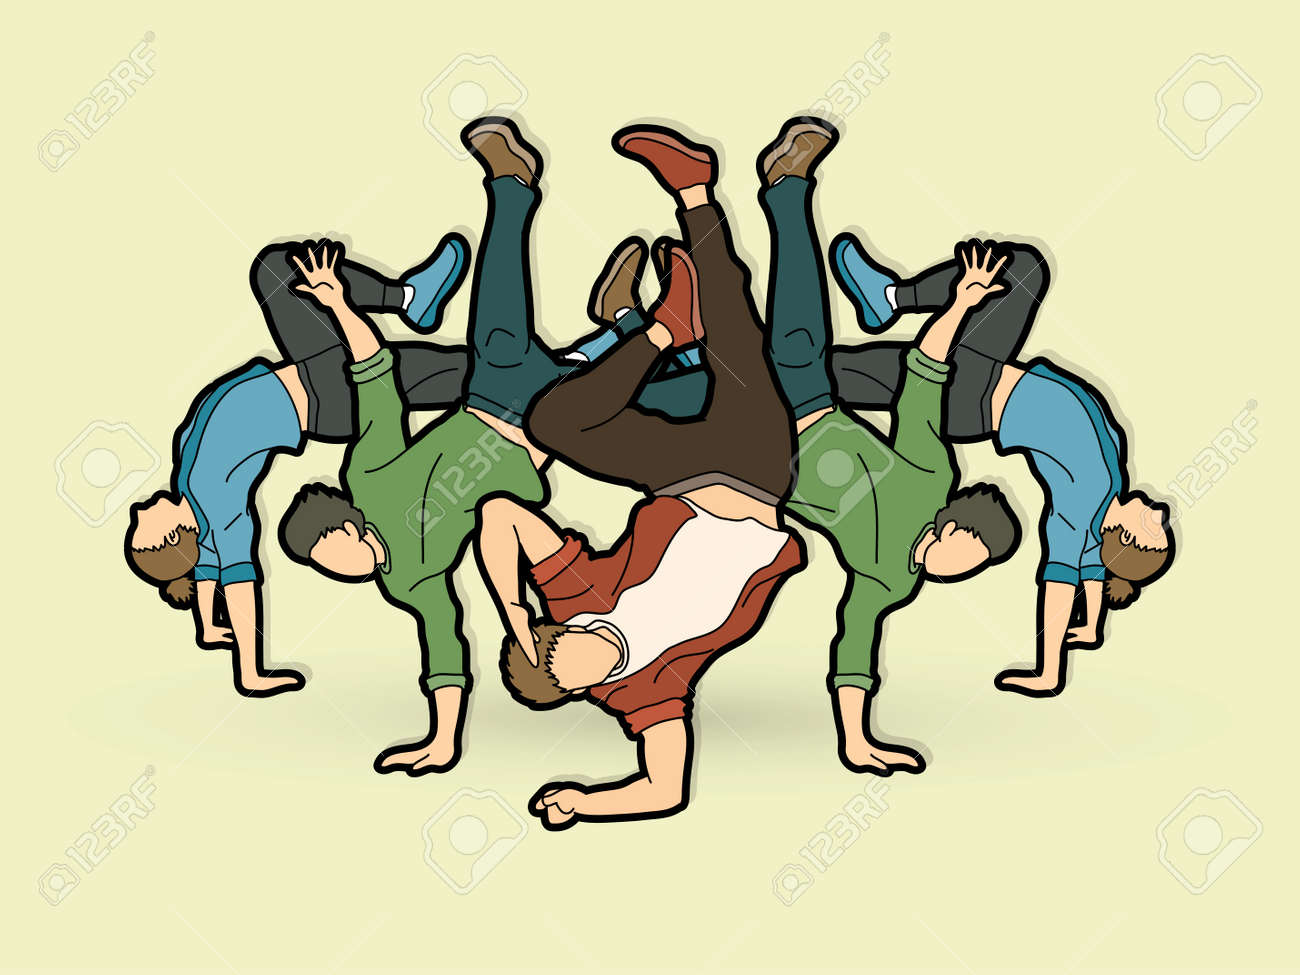 Group of people dancing. Composition graphic vector. - 96596724